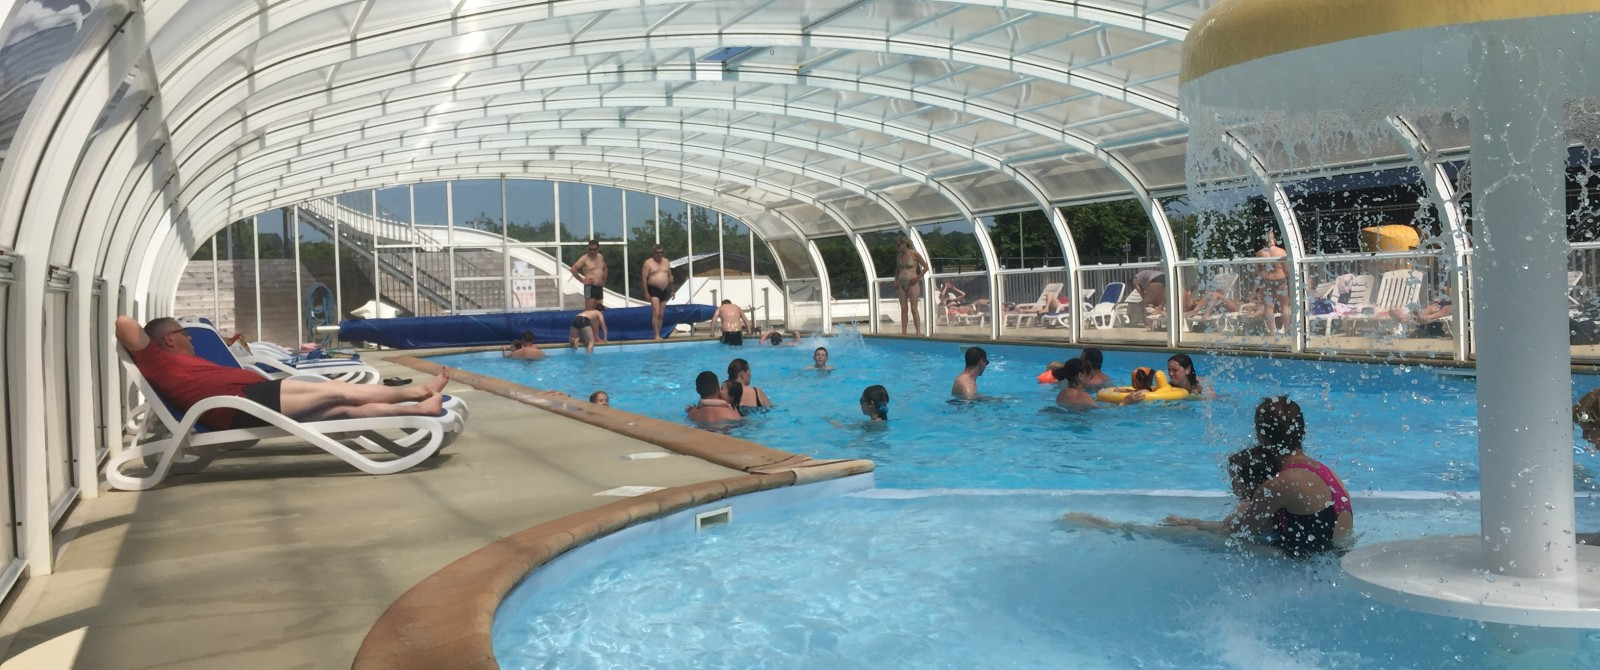 Camping capfun golf campings normandie - Camping normandie avec piscine couverte ...